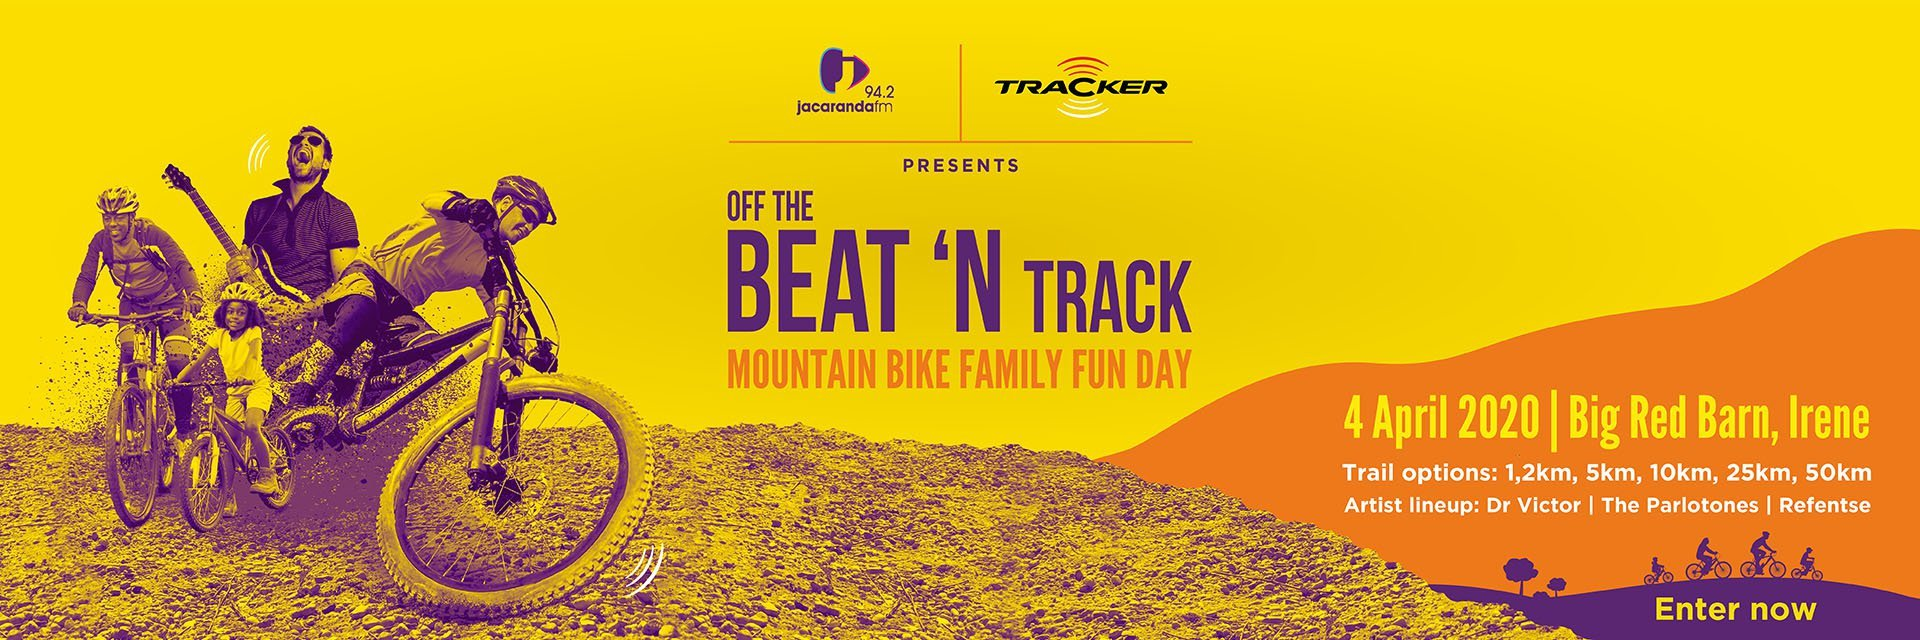 off the beat n track 2020